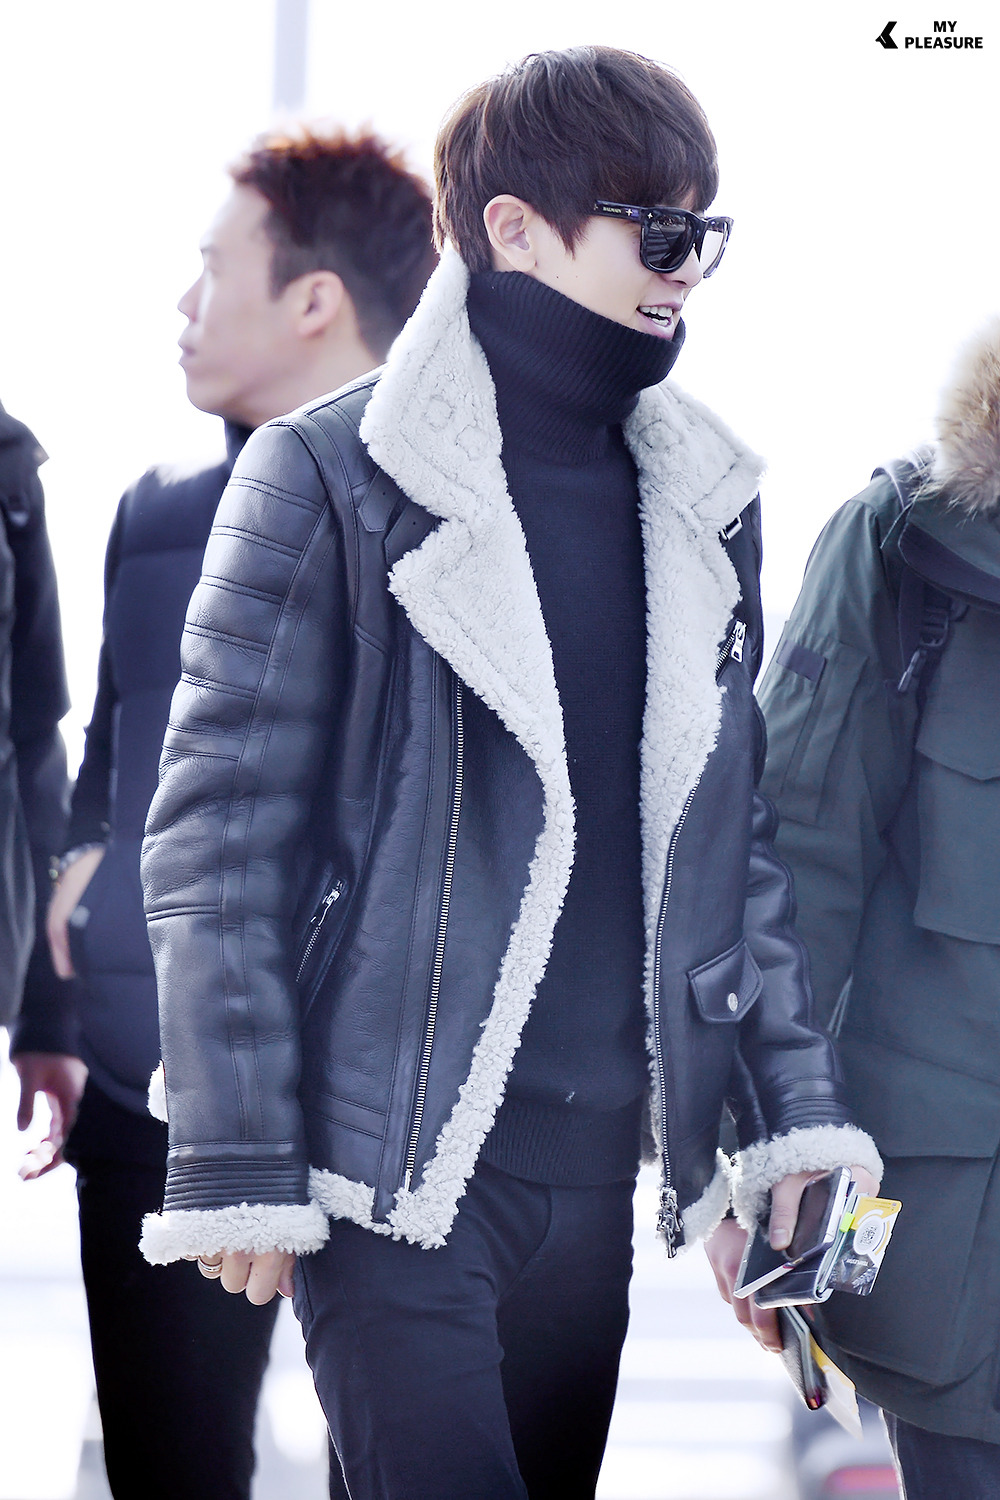 chanyeolairport_5b